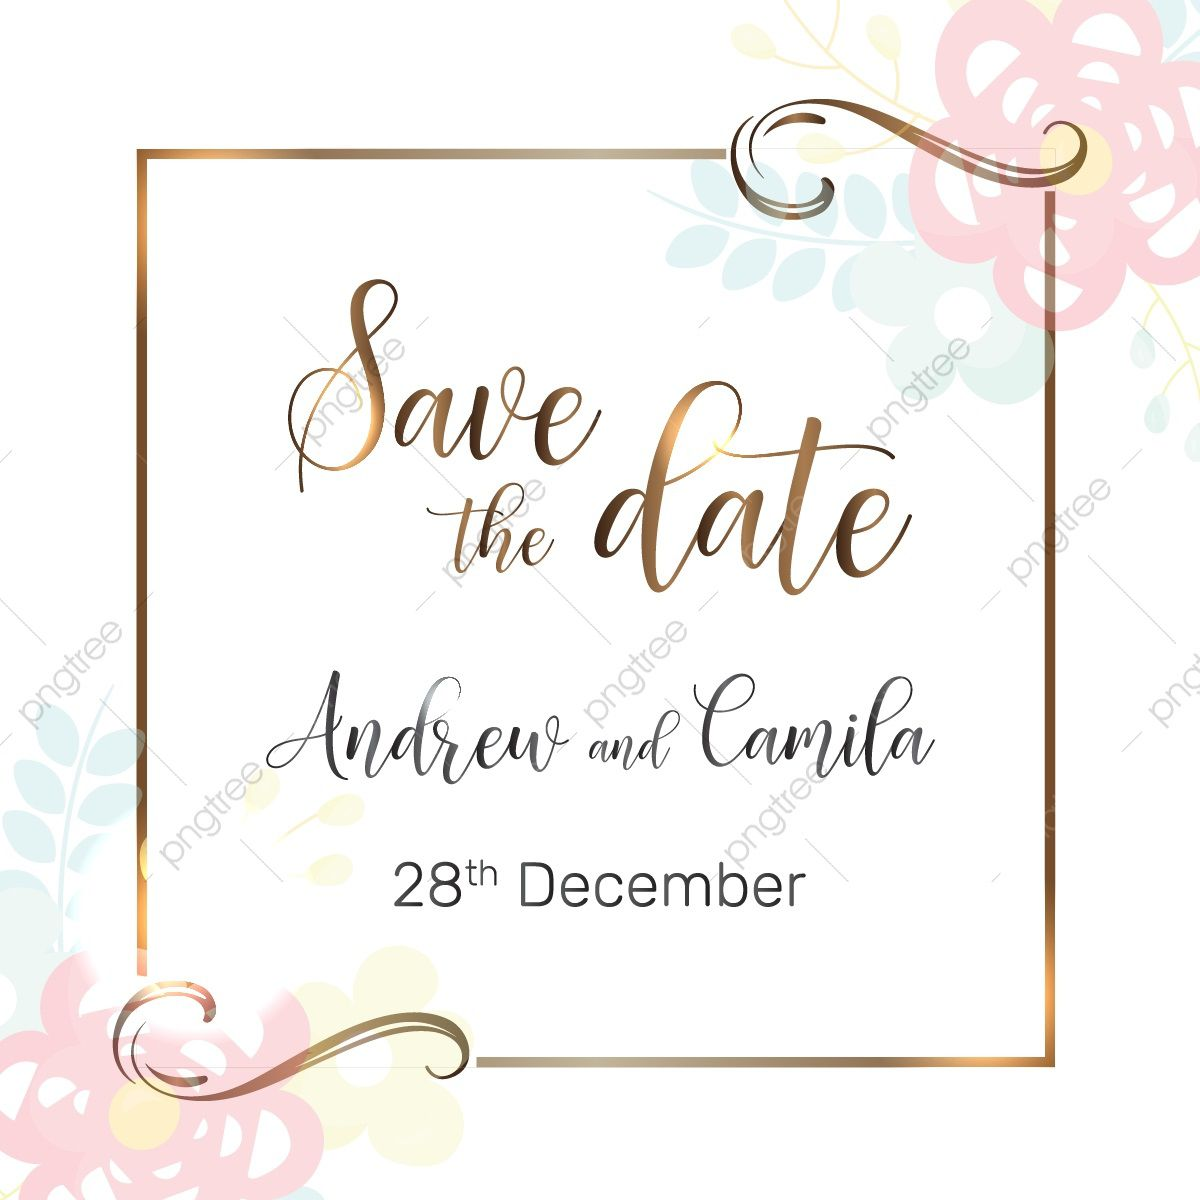 007 Unique Save The Date Template Word Concept  Free Customizable For Holiday PartyFull